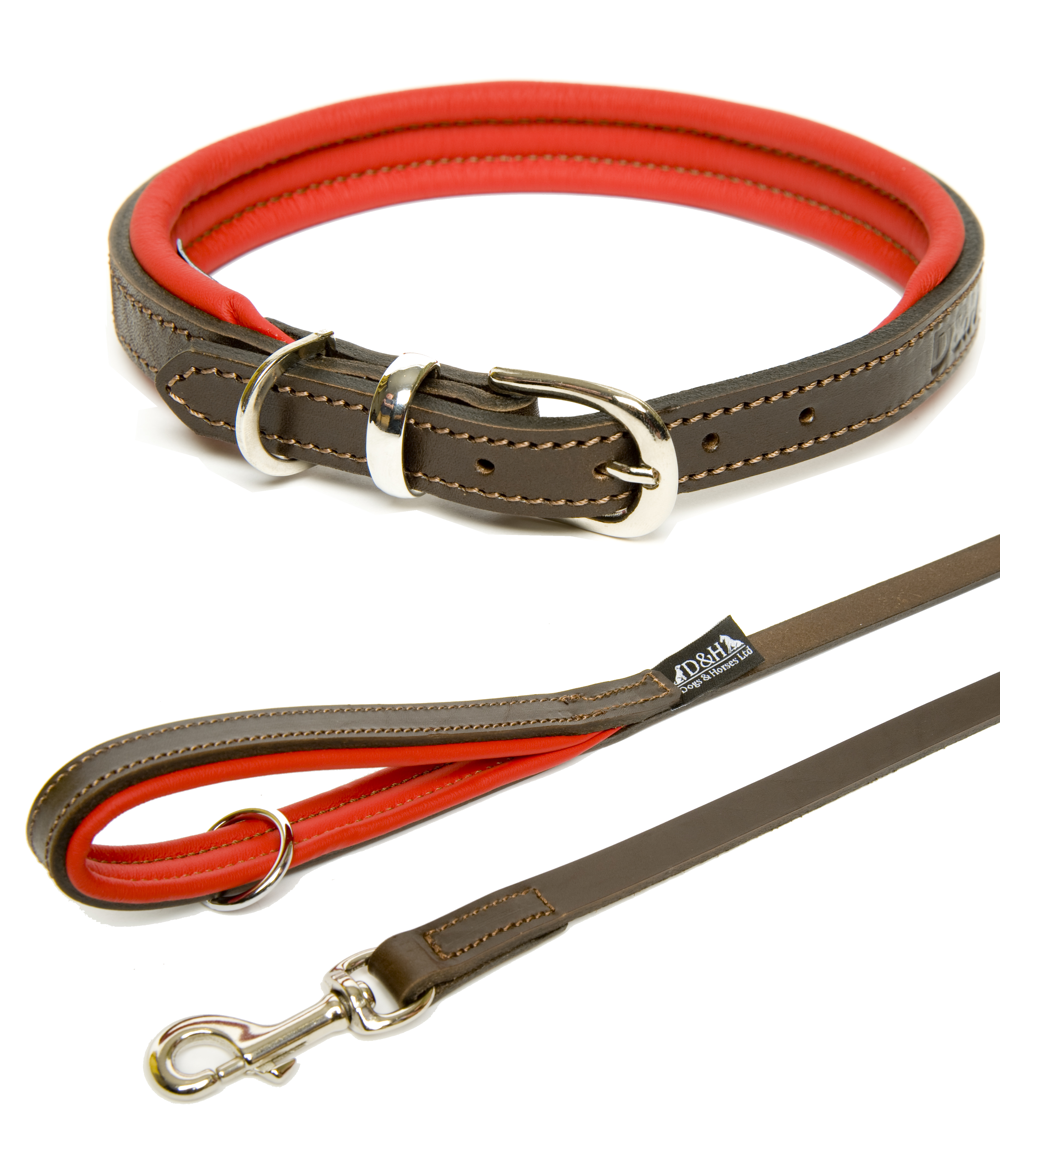 Dogs & Horses Red Leather Dog Collar and Lead at Chelsea Dogs